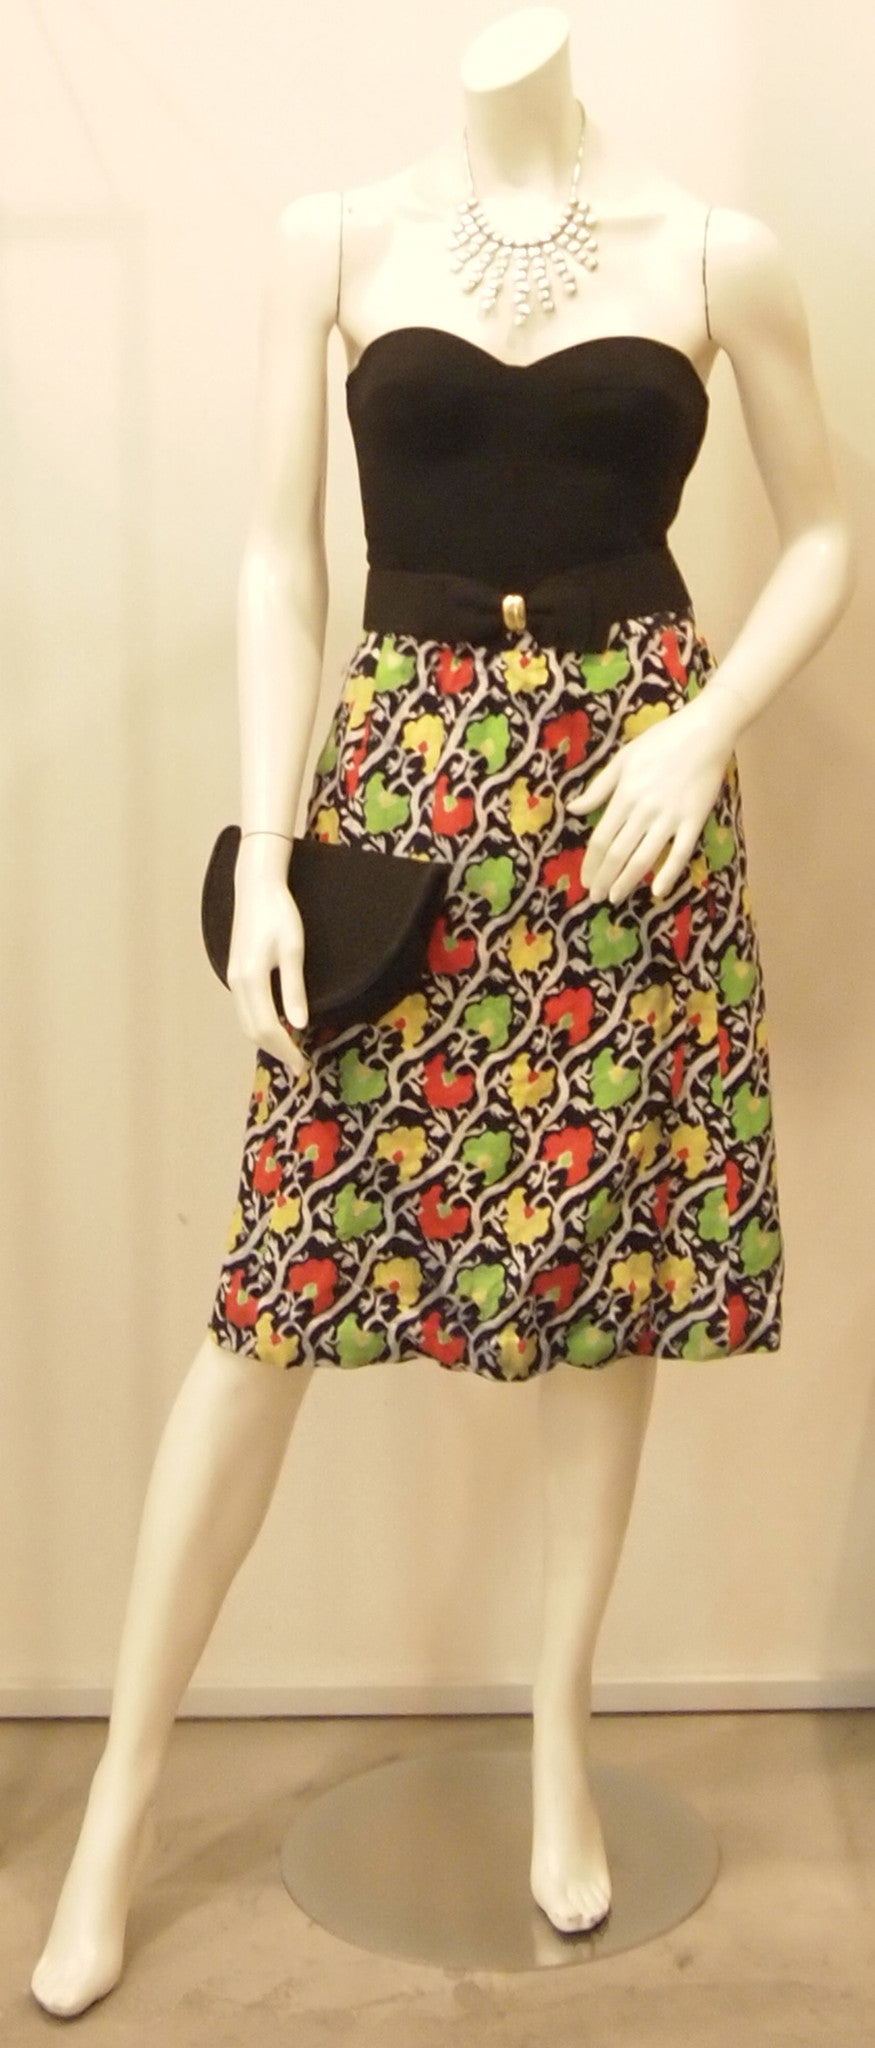 FUN SMOCKINGS VINTAGE 60S SKIRT